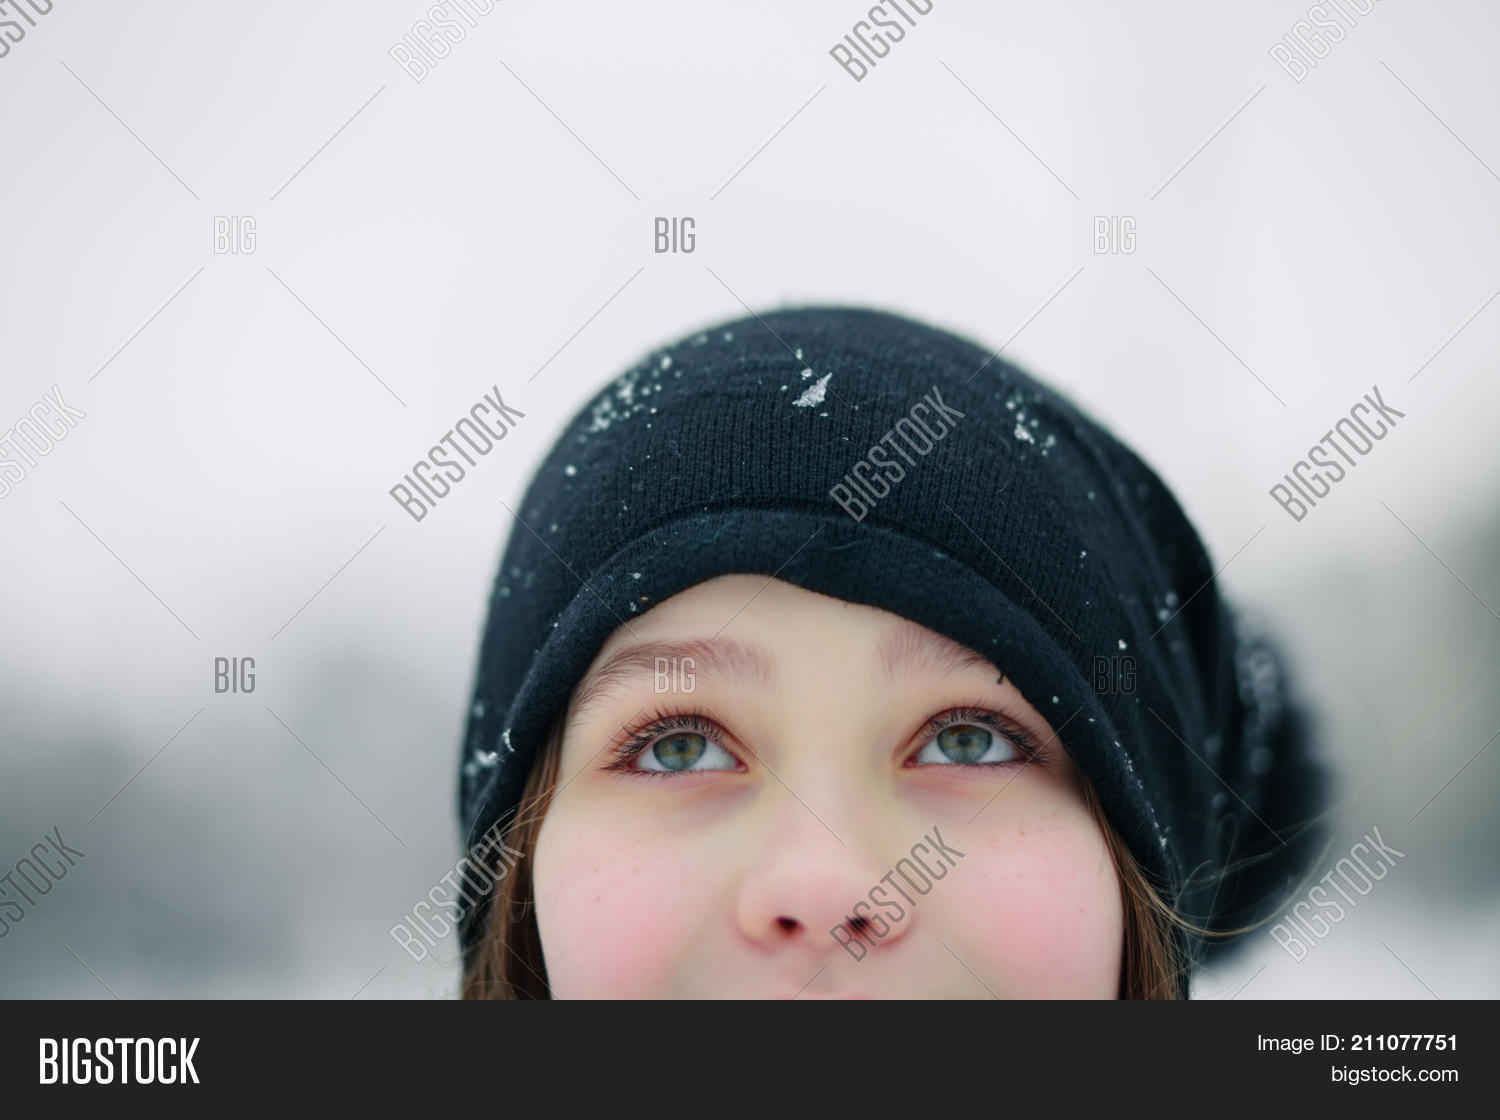 652cd4be75d66 girl s eyes are looking up. Girl in a black beret. A child with beautiful  green eyes against the background of a winter landscape.